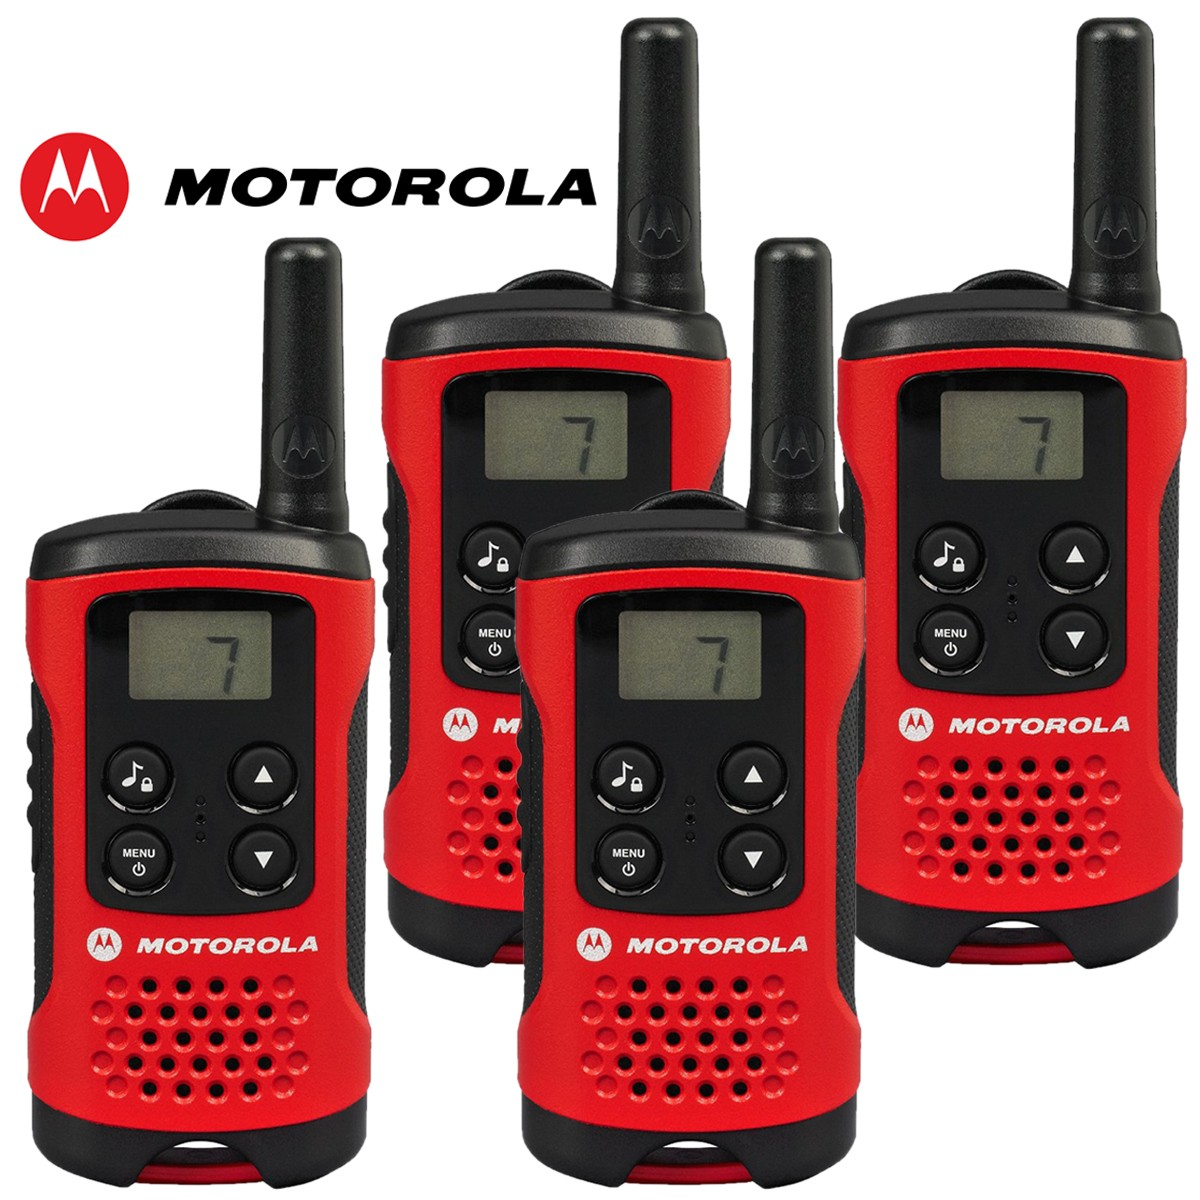 motorola t40 tough walkie talkie compact